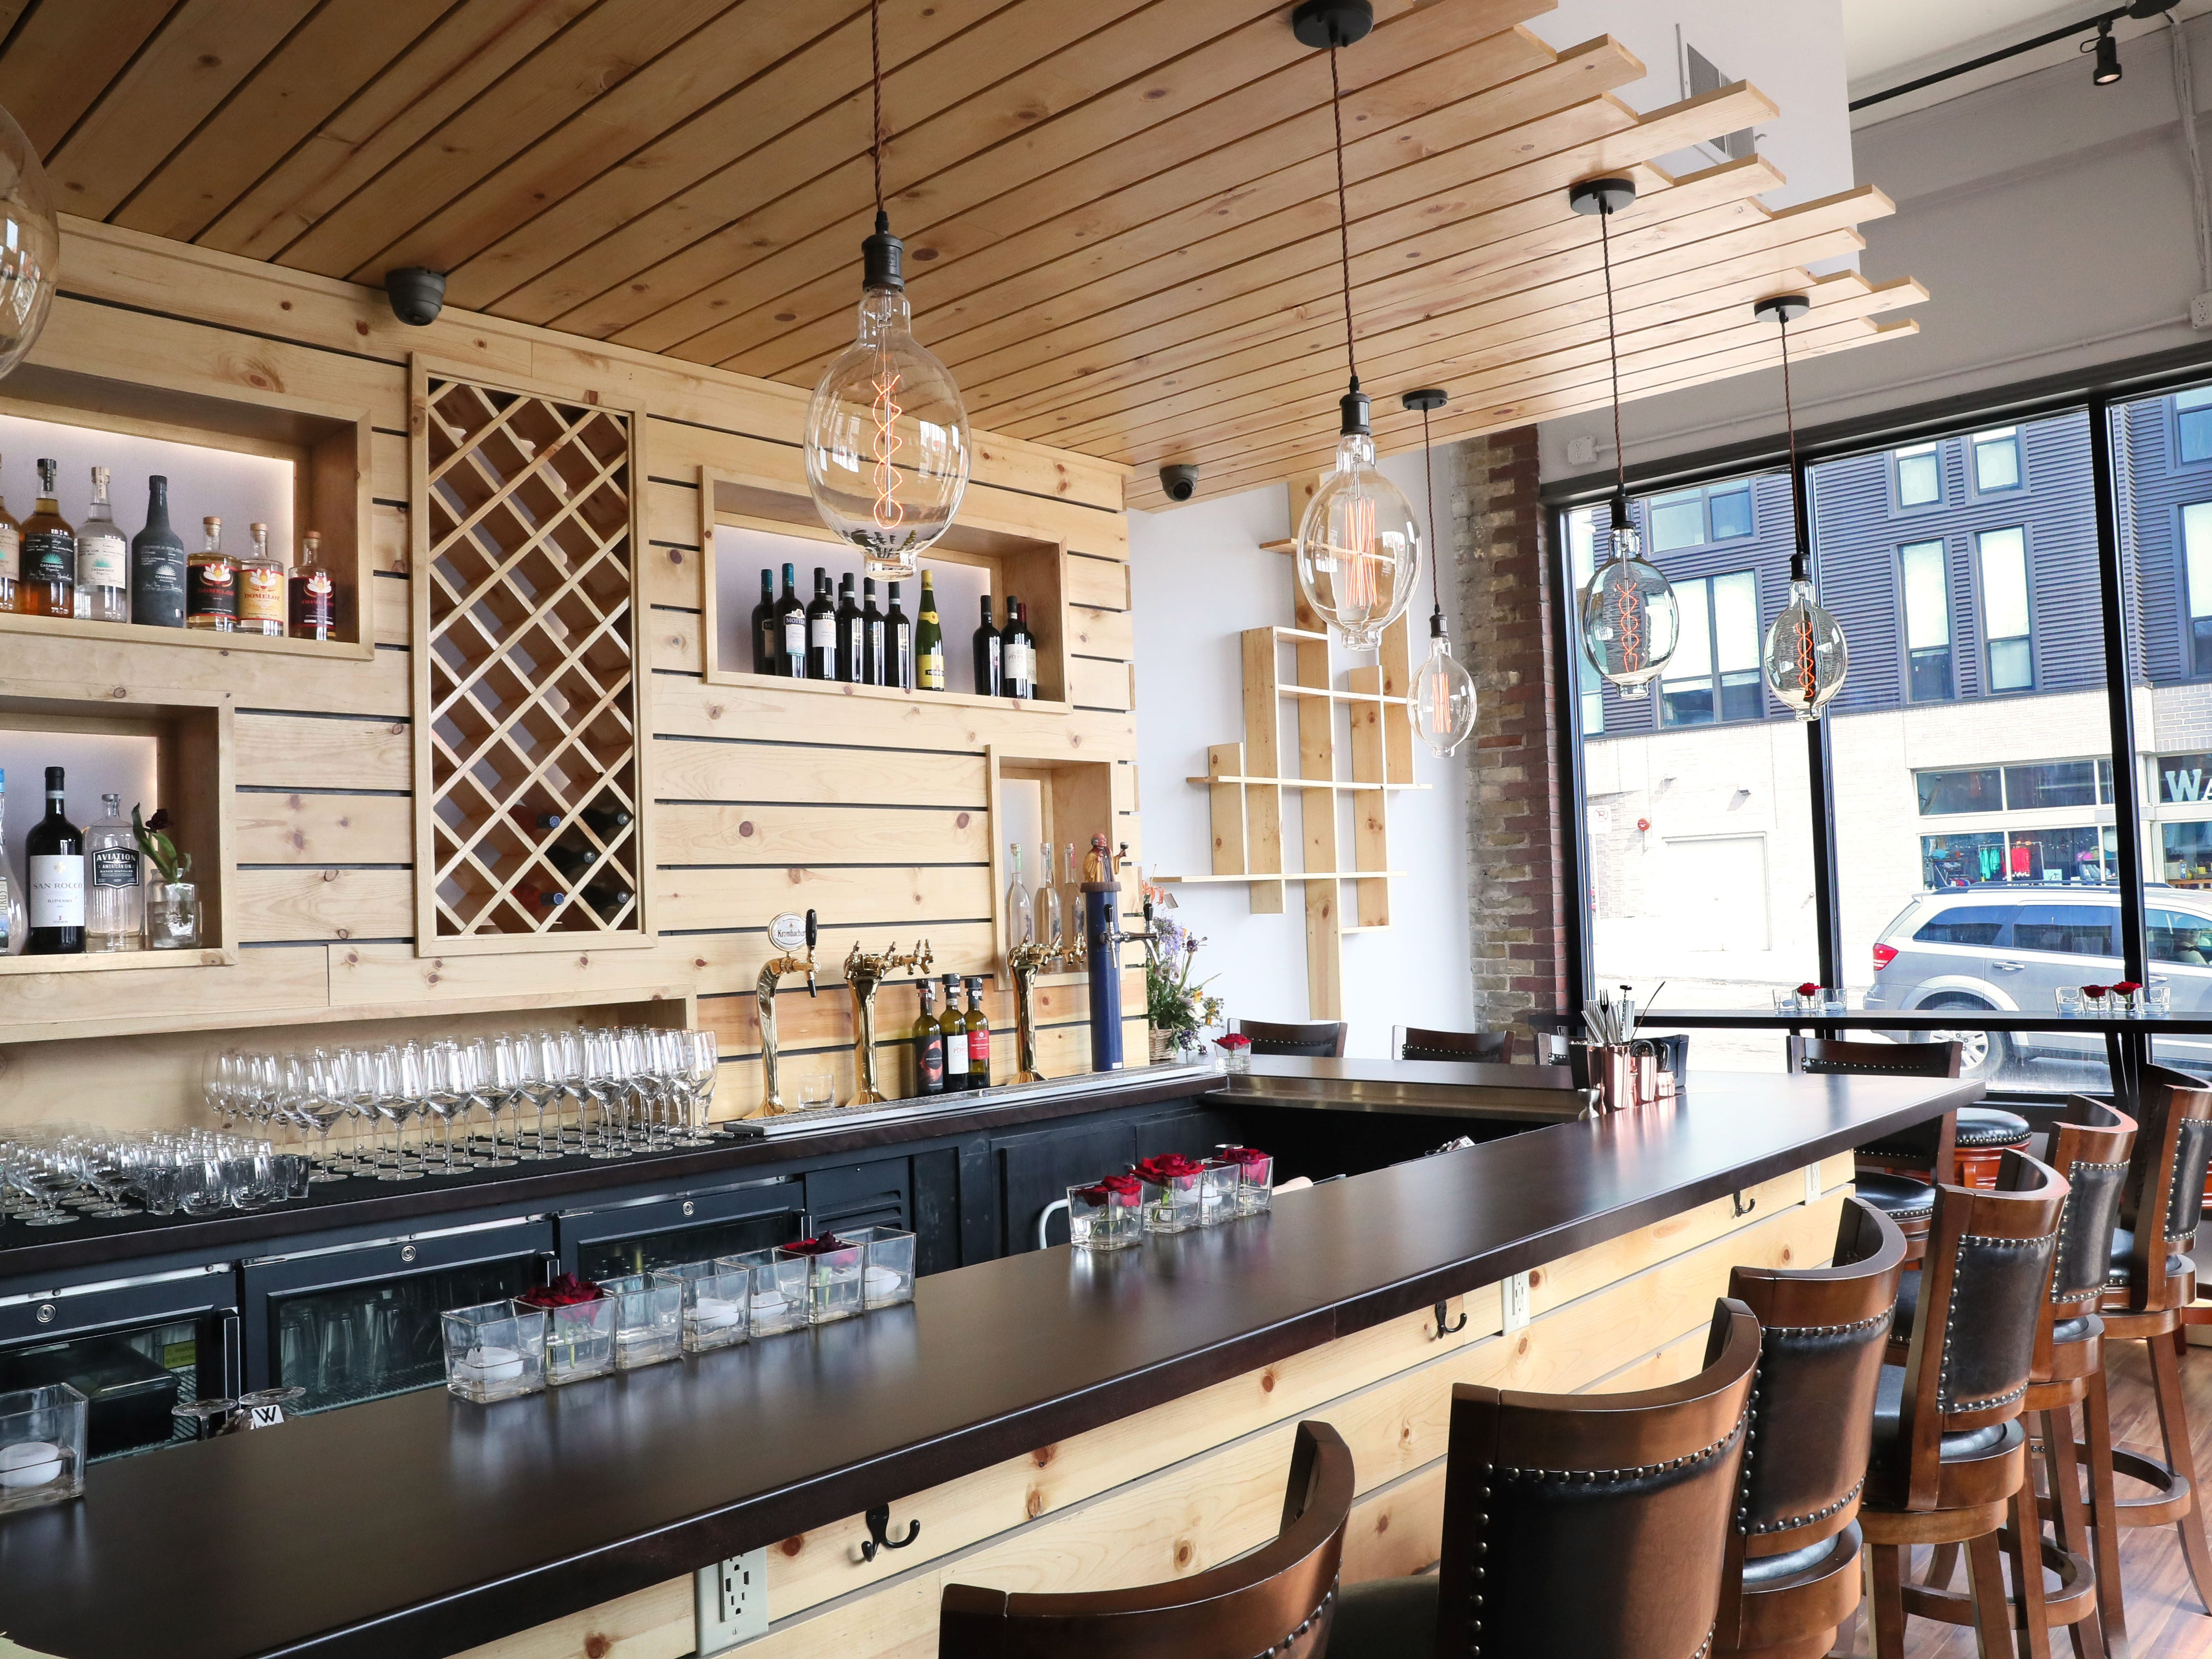 An interior view of the bar at Baccanera, a new wine bar at 1732 E. North Ave in Milwaukee.